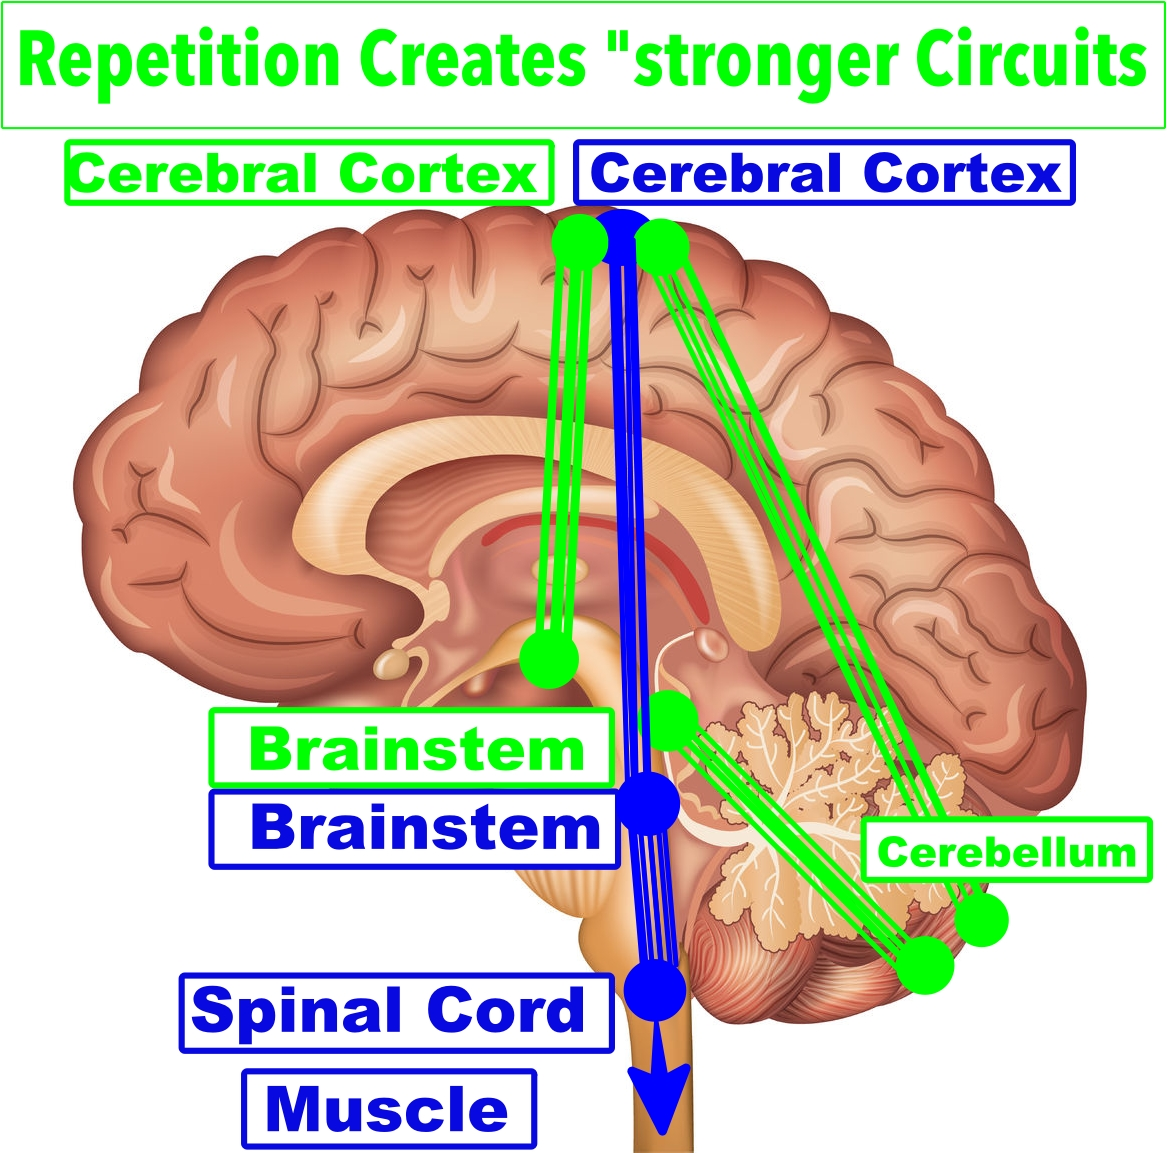 vector image of the brain with repetition